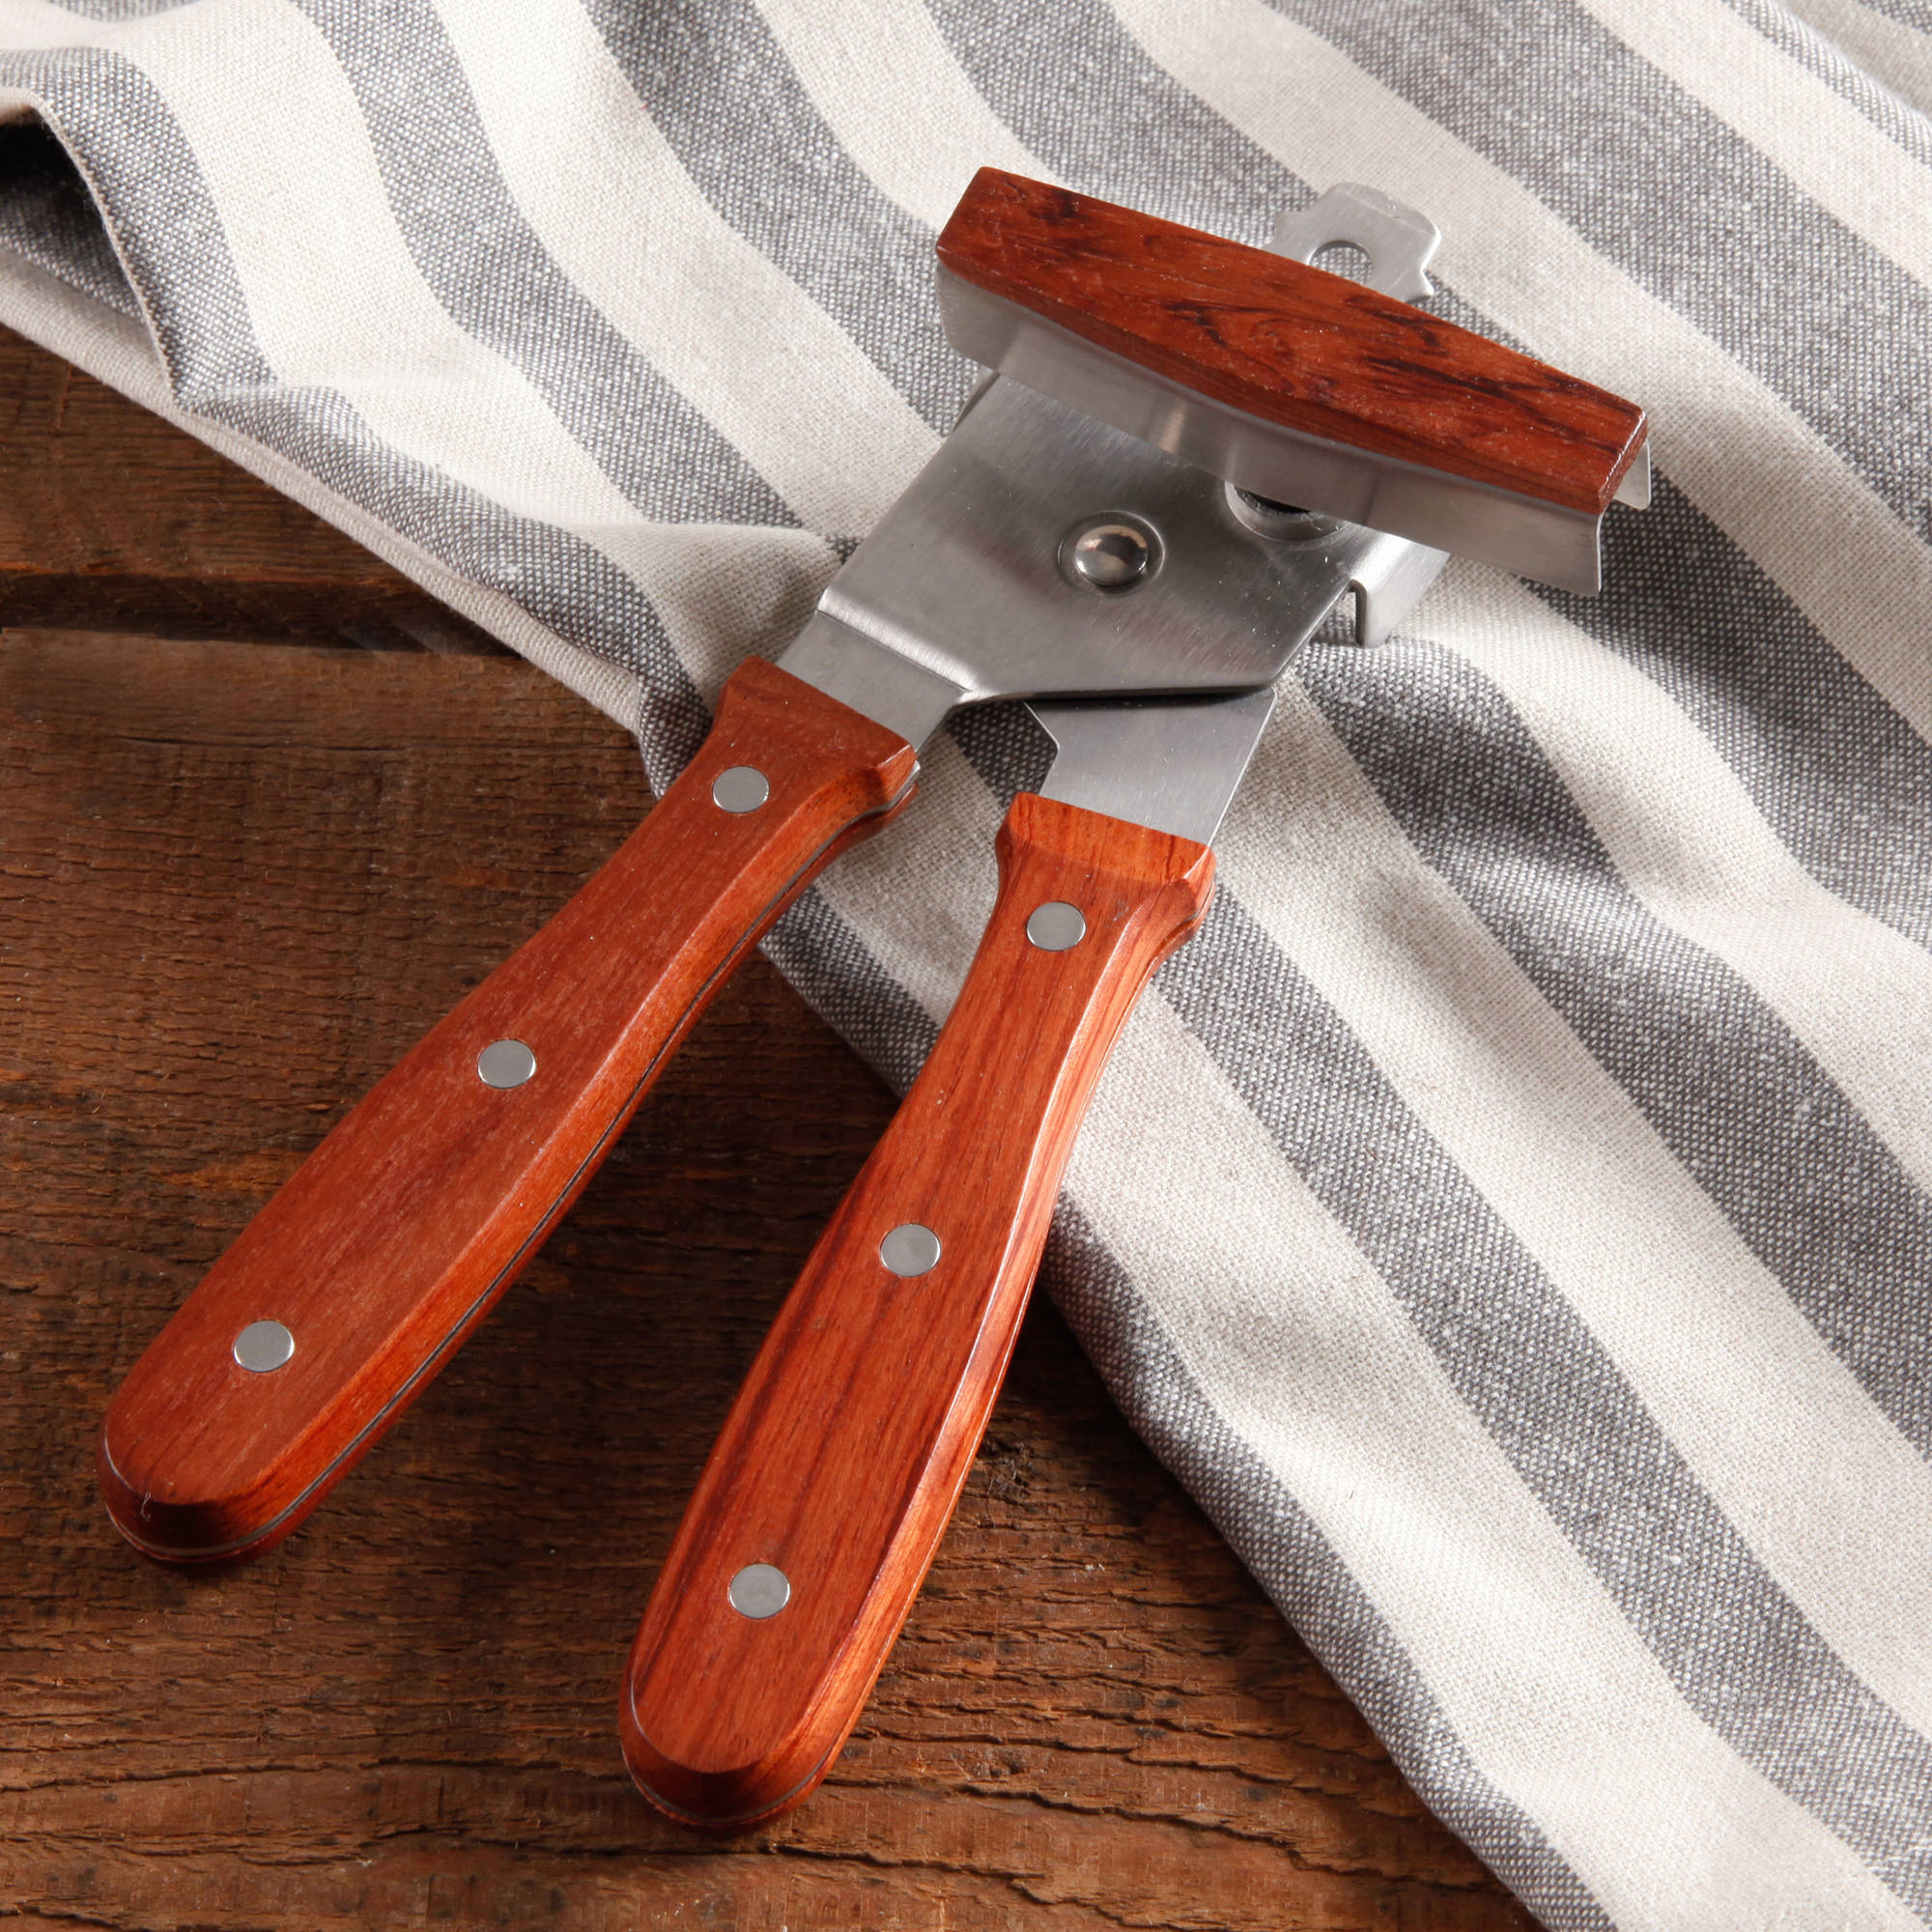 The Pioneer Woman Cowboy Rustic Rosewood Handle Can Opener